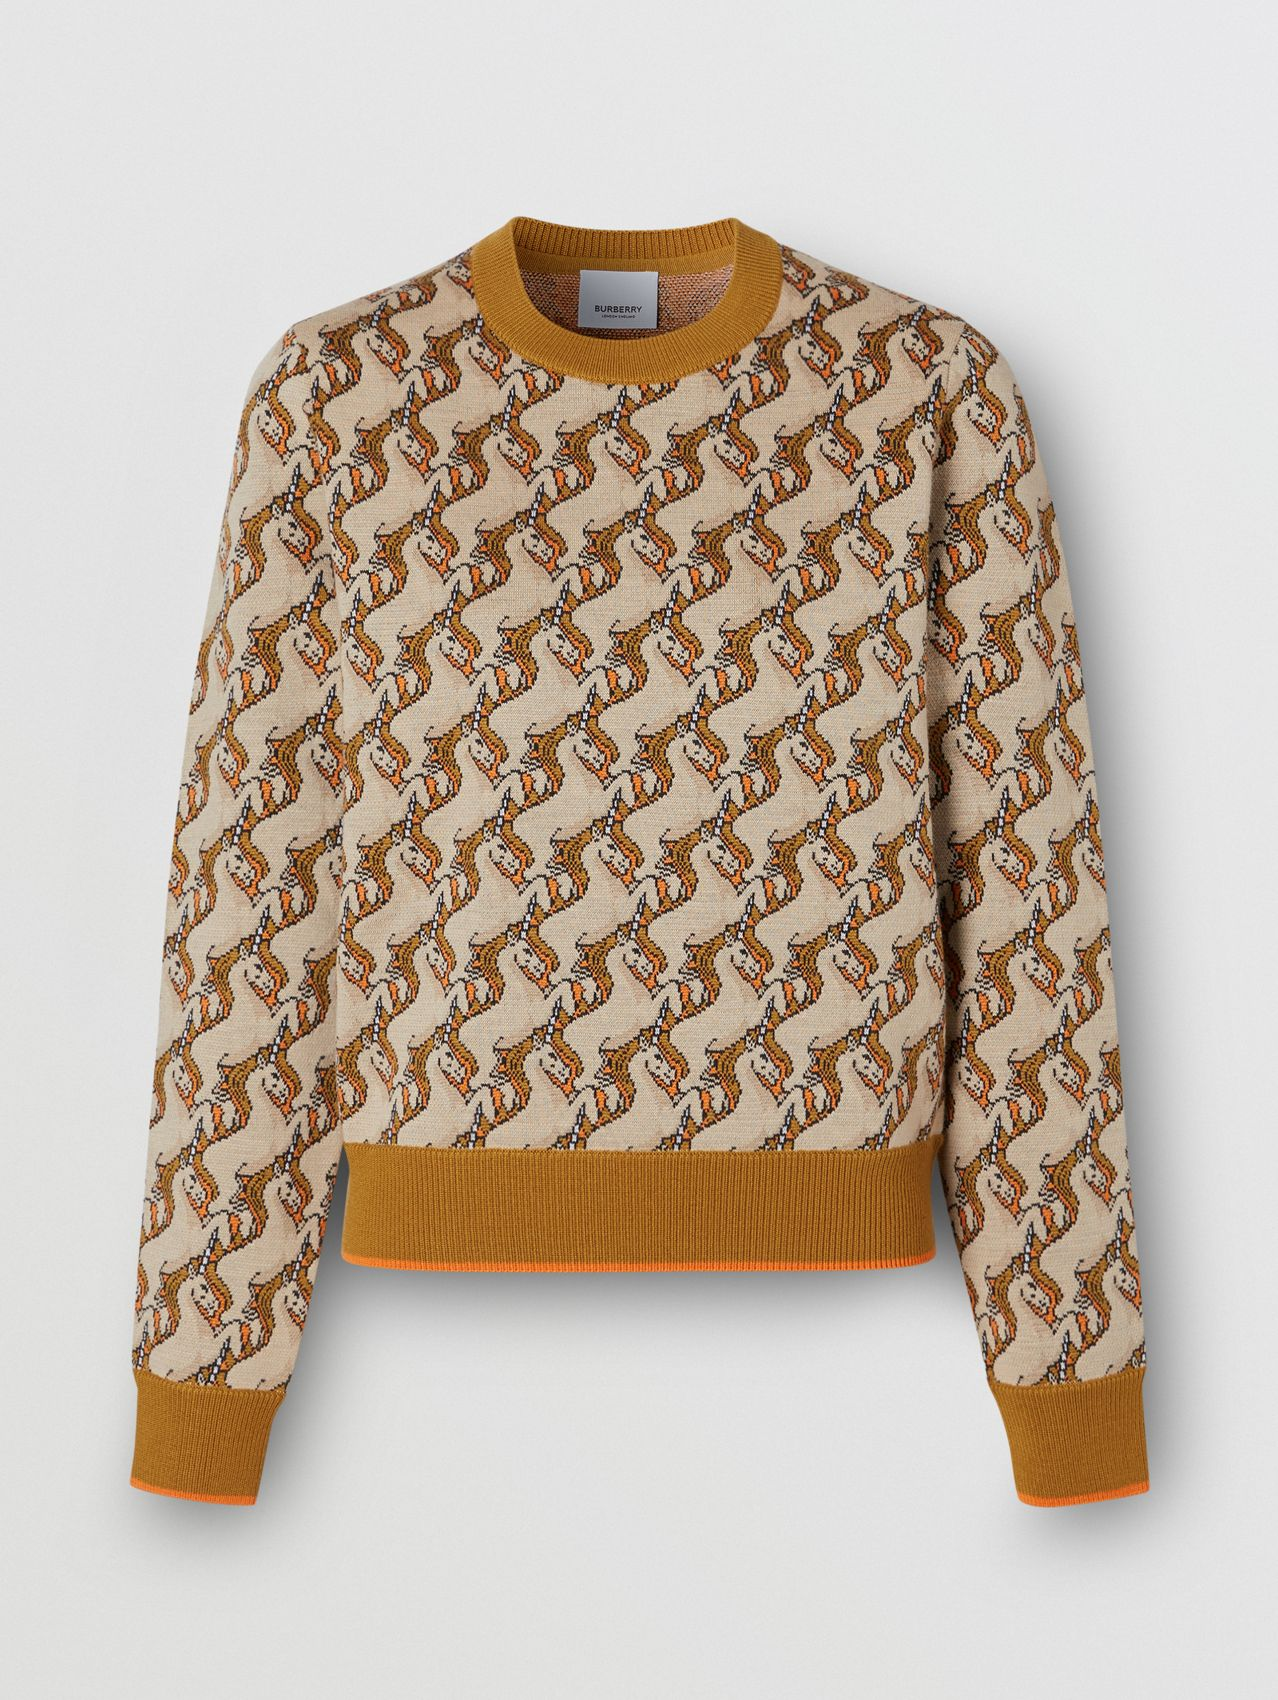 Unicorn Merino Wool Blend Jacquard Sweater